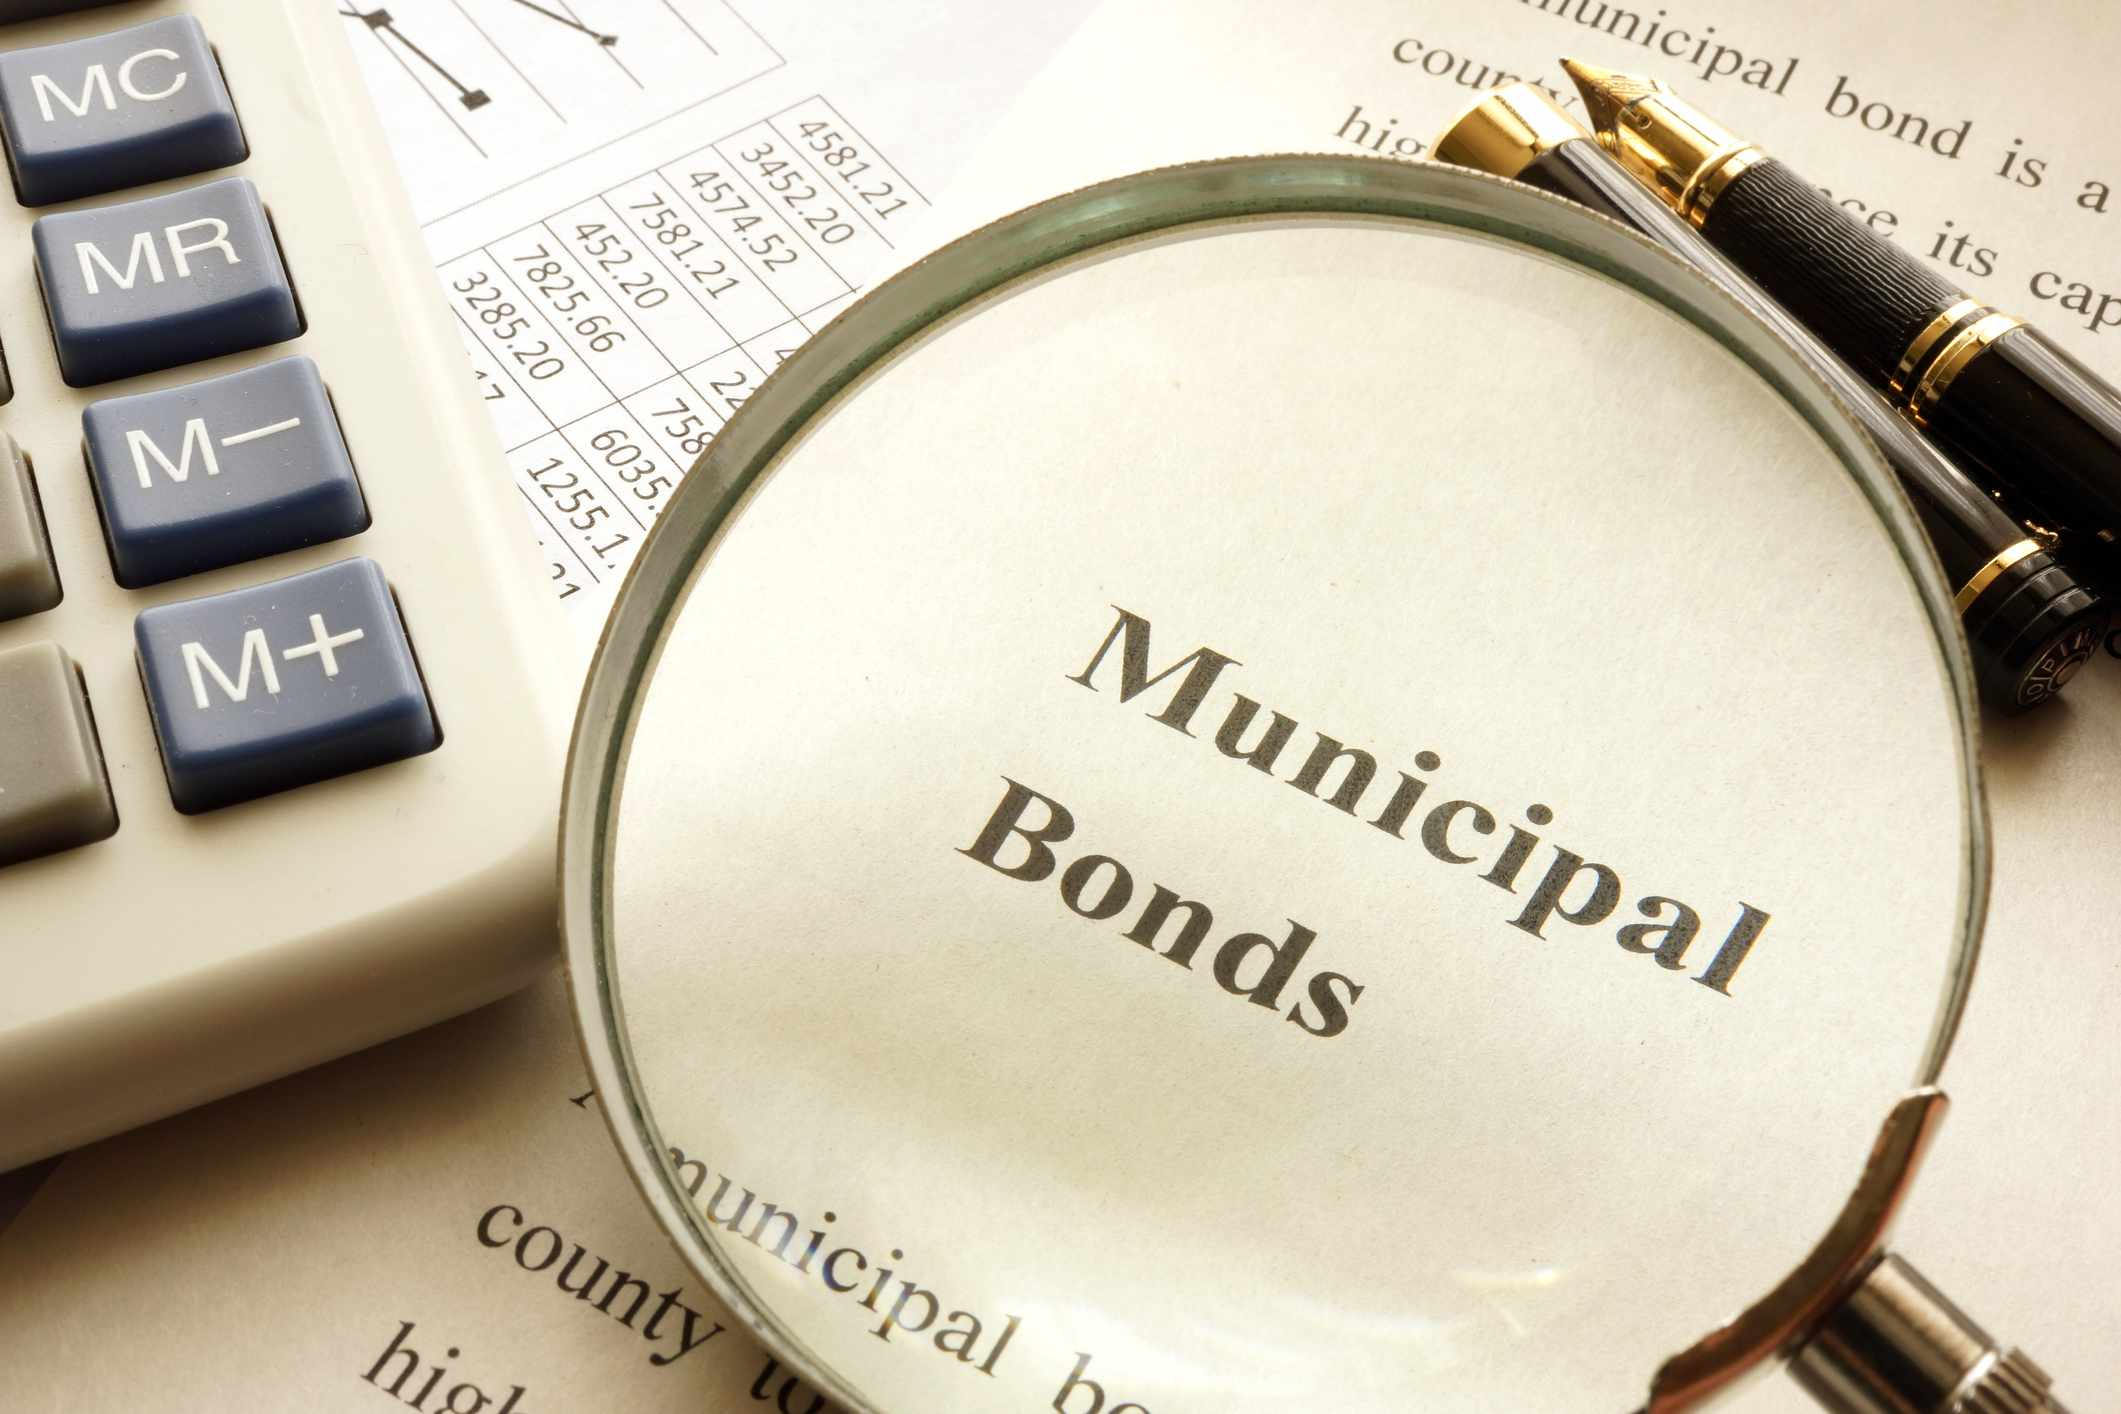 Municipal Bond Tips for the Series 7 Exam